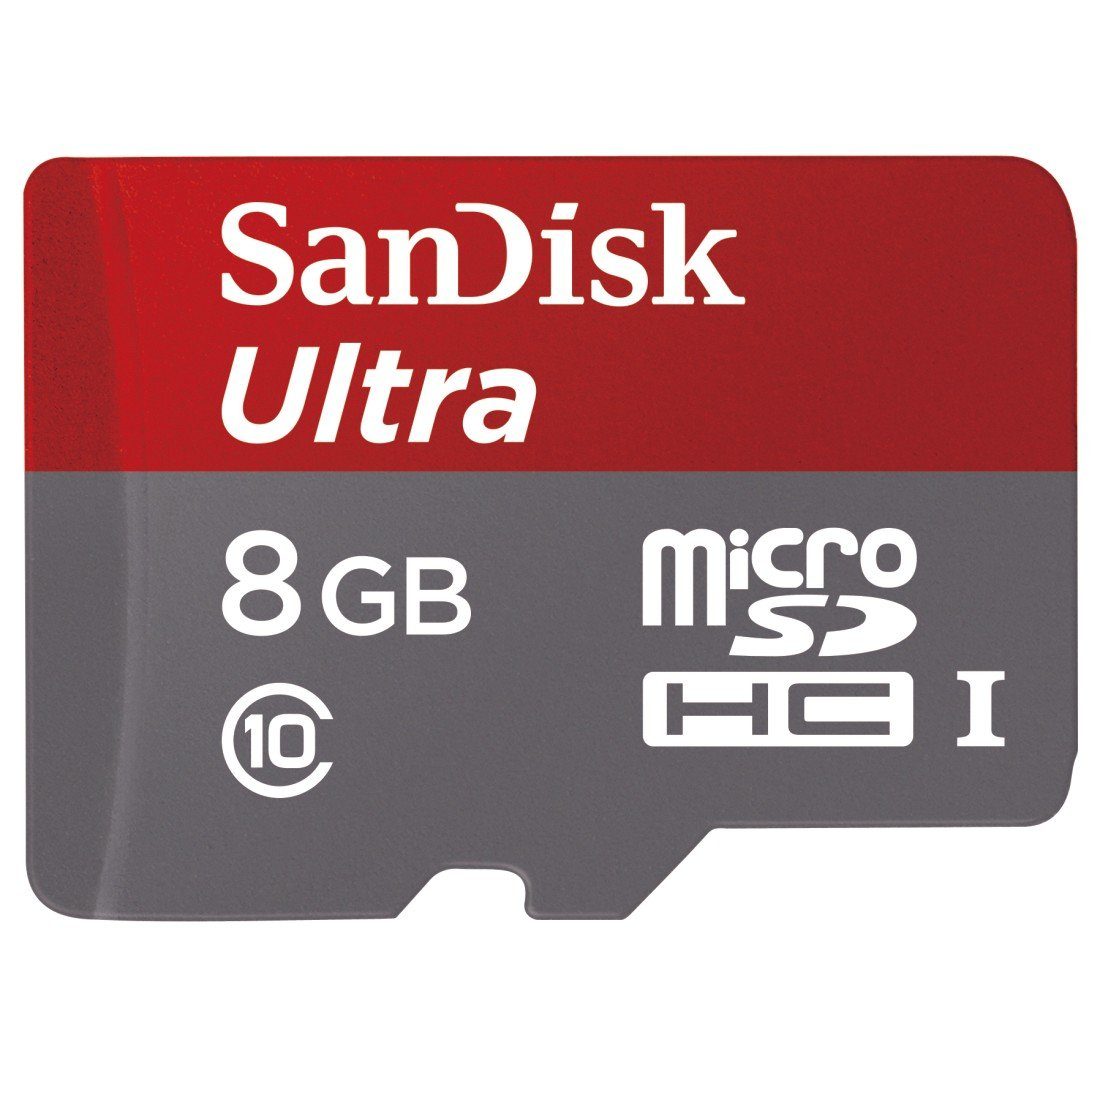 SanDisk Ultra 8GB Class 10 UHS-I MicroSDHC Memory Card with Adapter, Grey / Red, Standard Packaging (SDSDQUAN-008G-G4A)